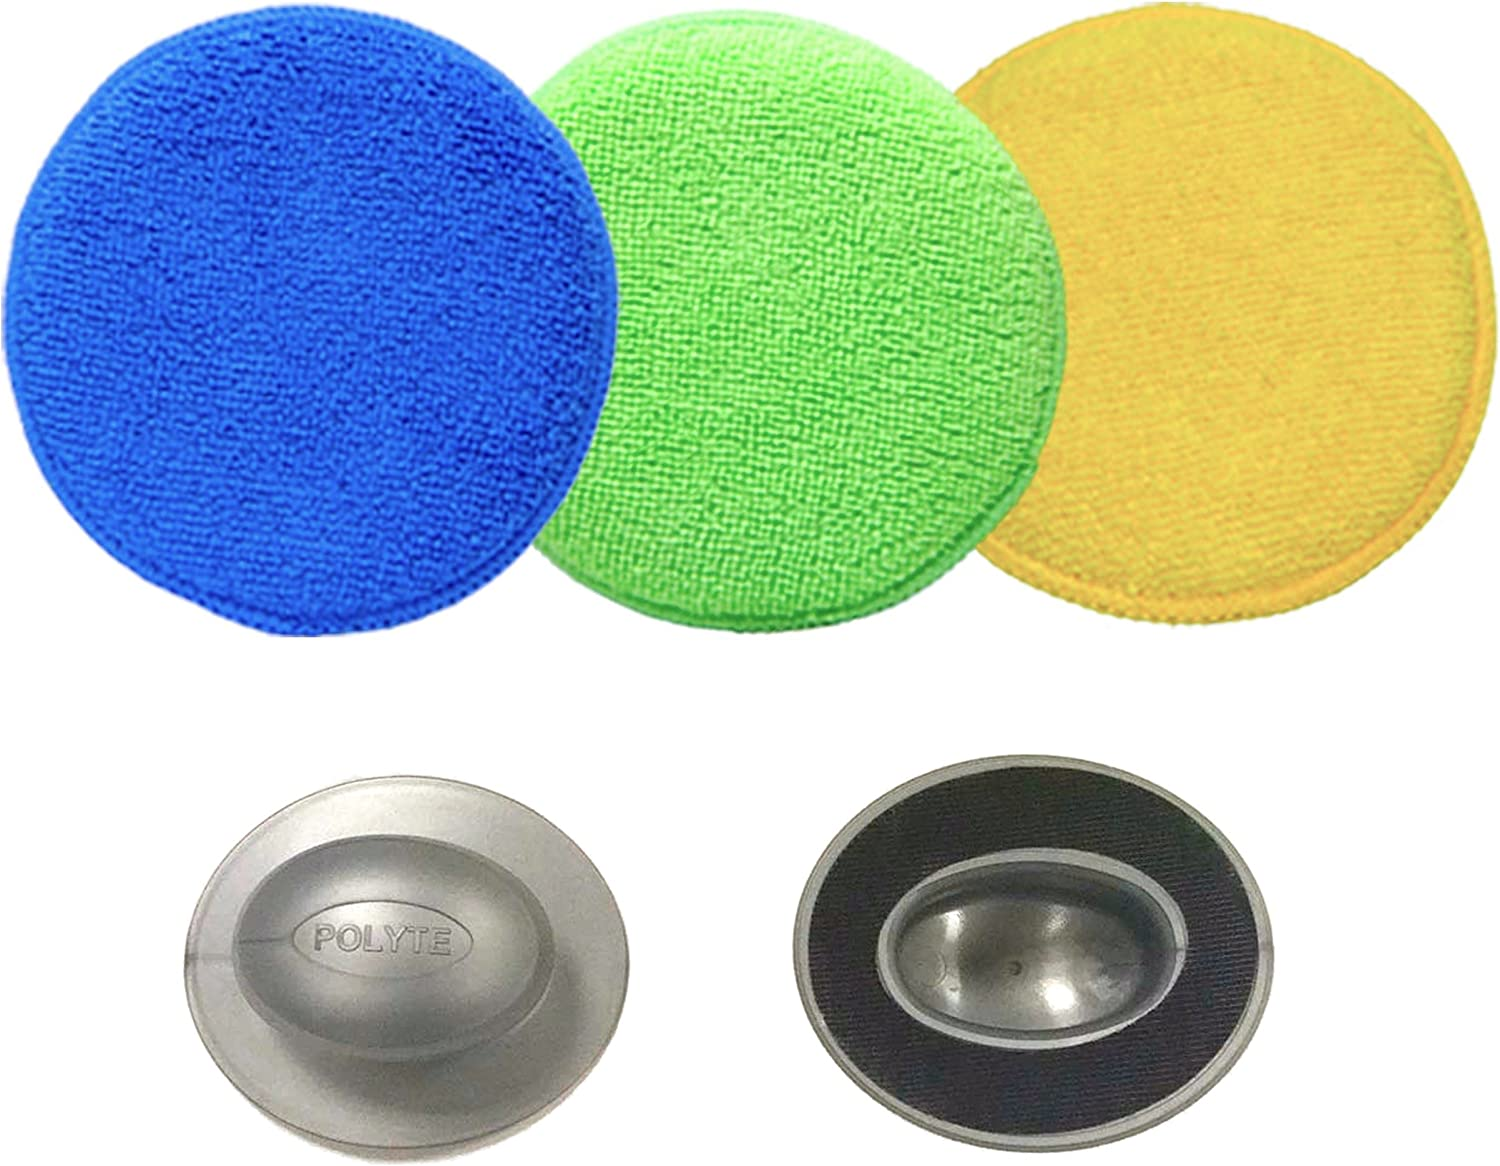 8 Pack Polyte Microfiber Detailing Wax Applicator Pad Blue, 5 in